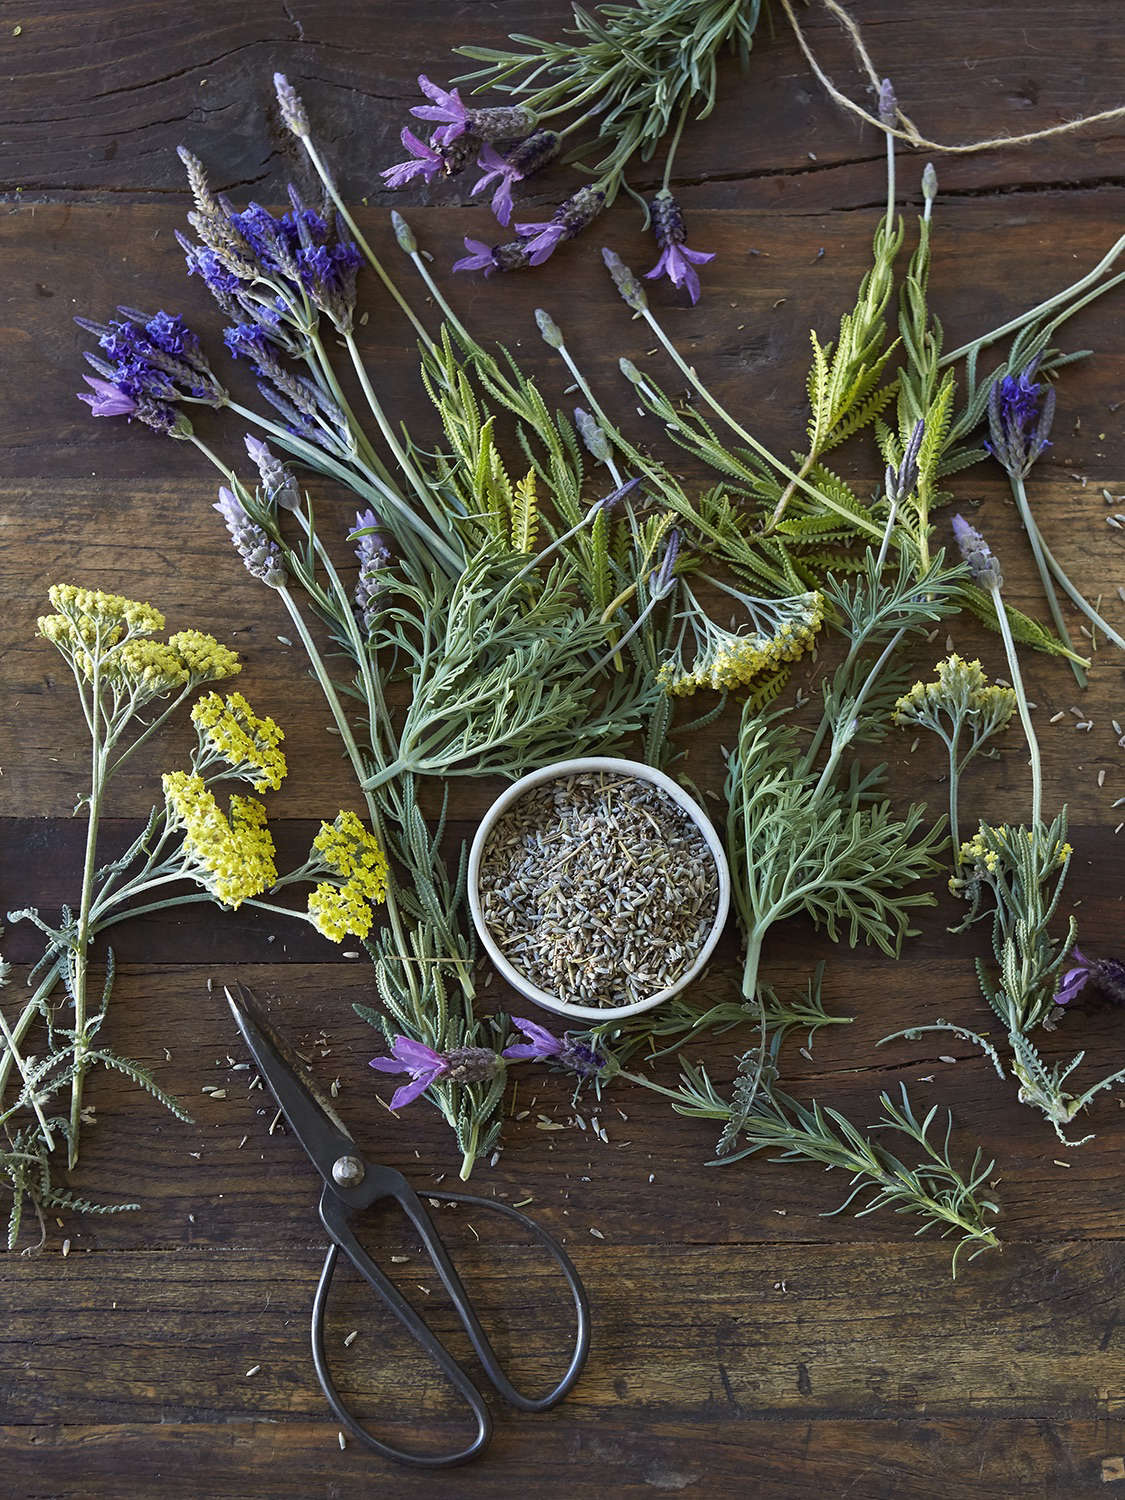 Depending on the species, lavender flowers come in shades of blue, purple, pink, or white. If you want, also buy dried lavender flowers (which are very fragrant) and tie a little sachet to each lavender bundle.